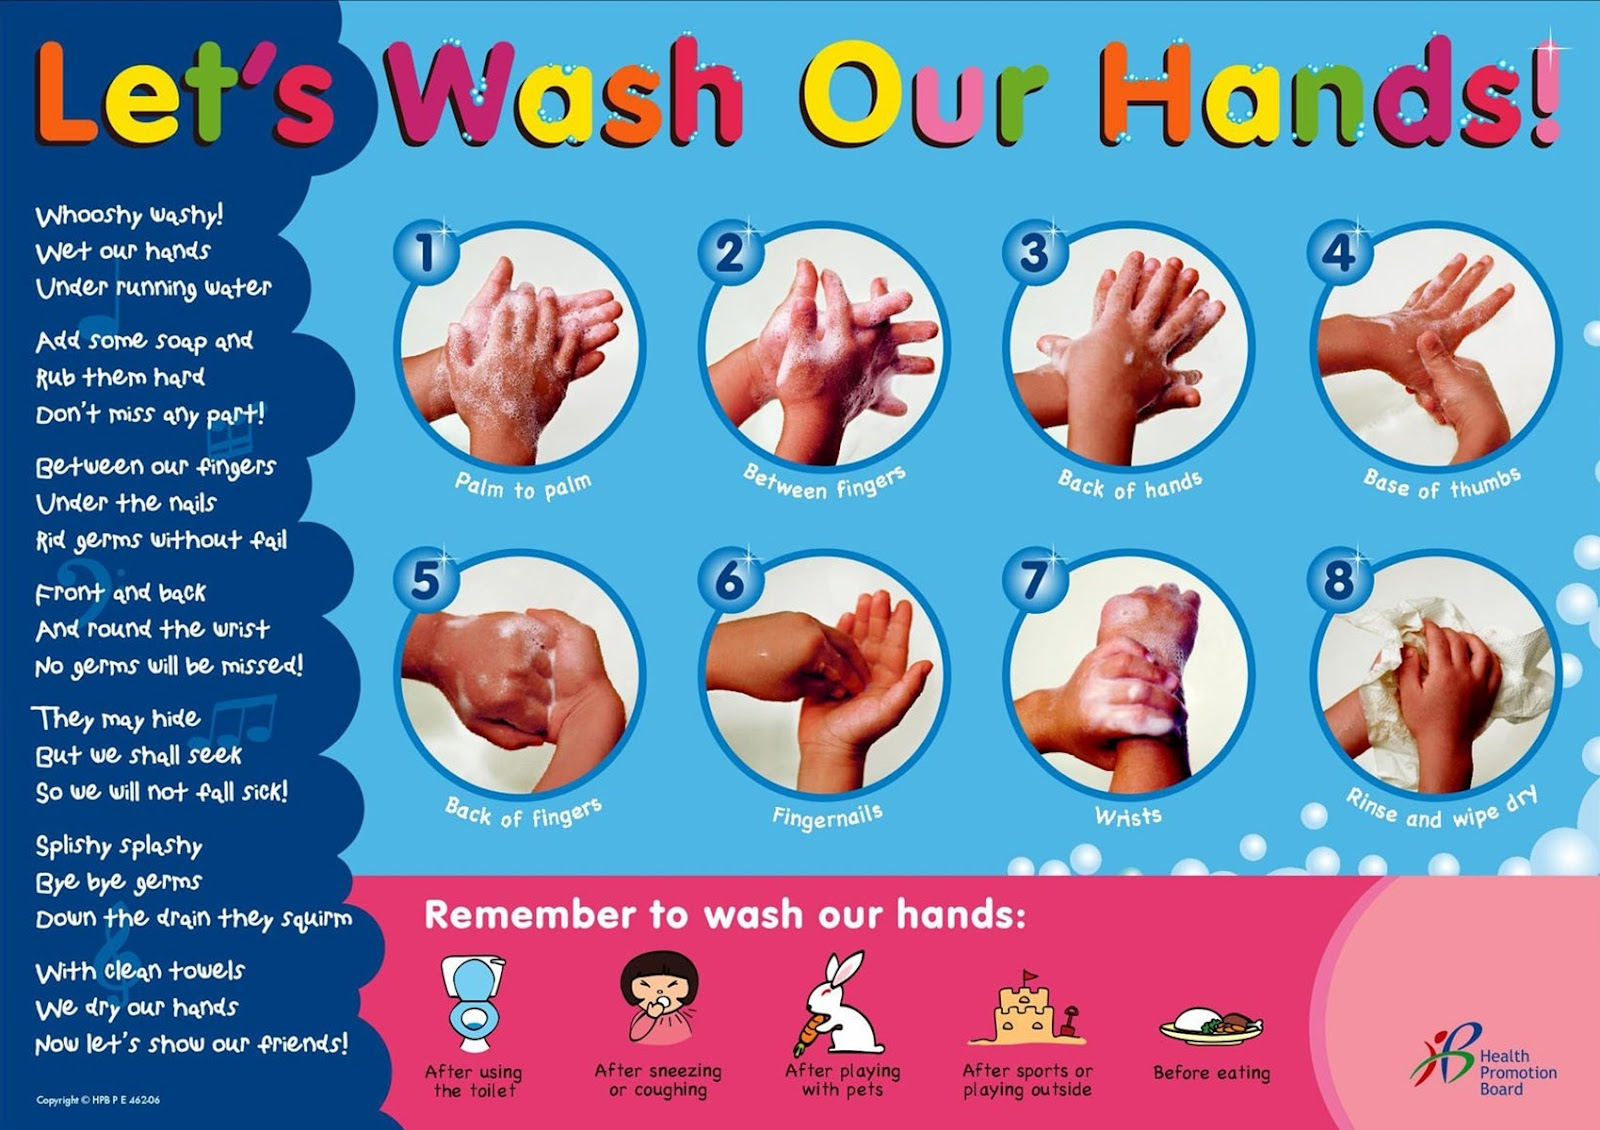 Ms. Kim's Class Blog: Proper Hand Washing